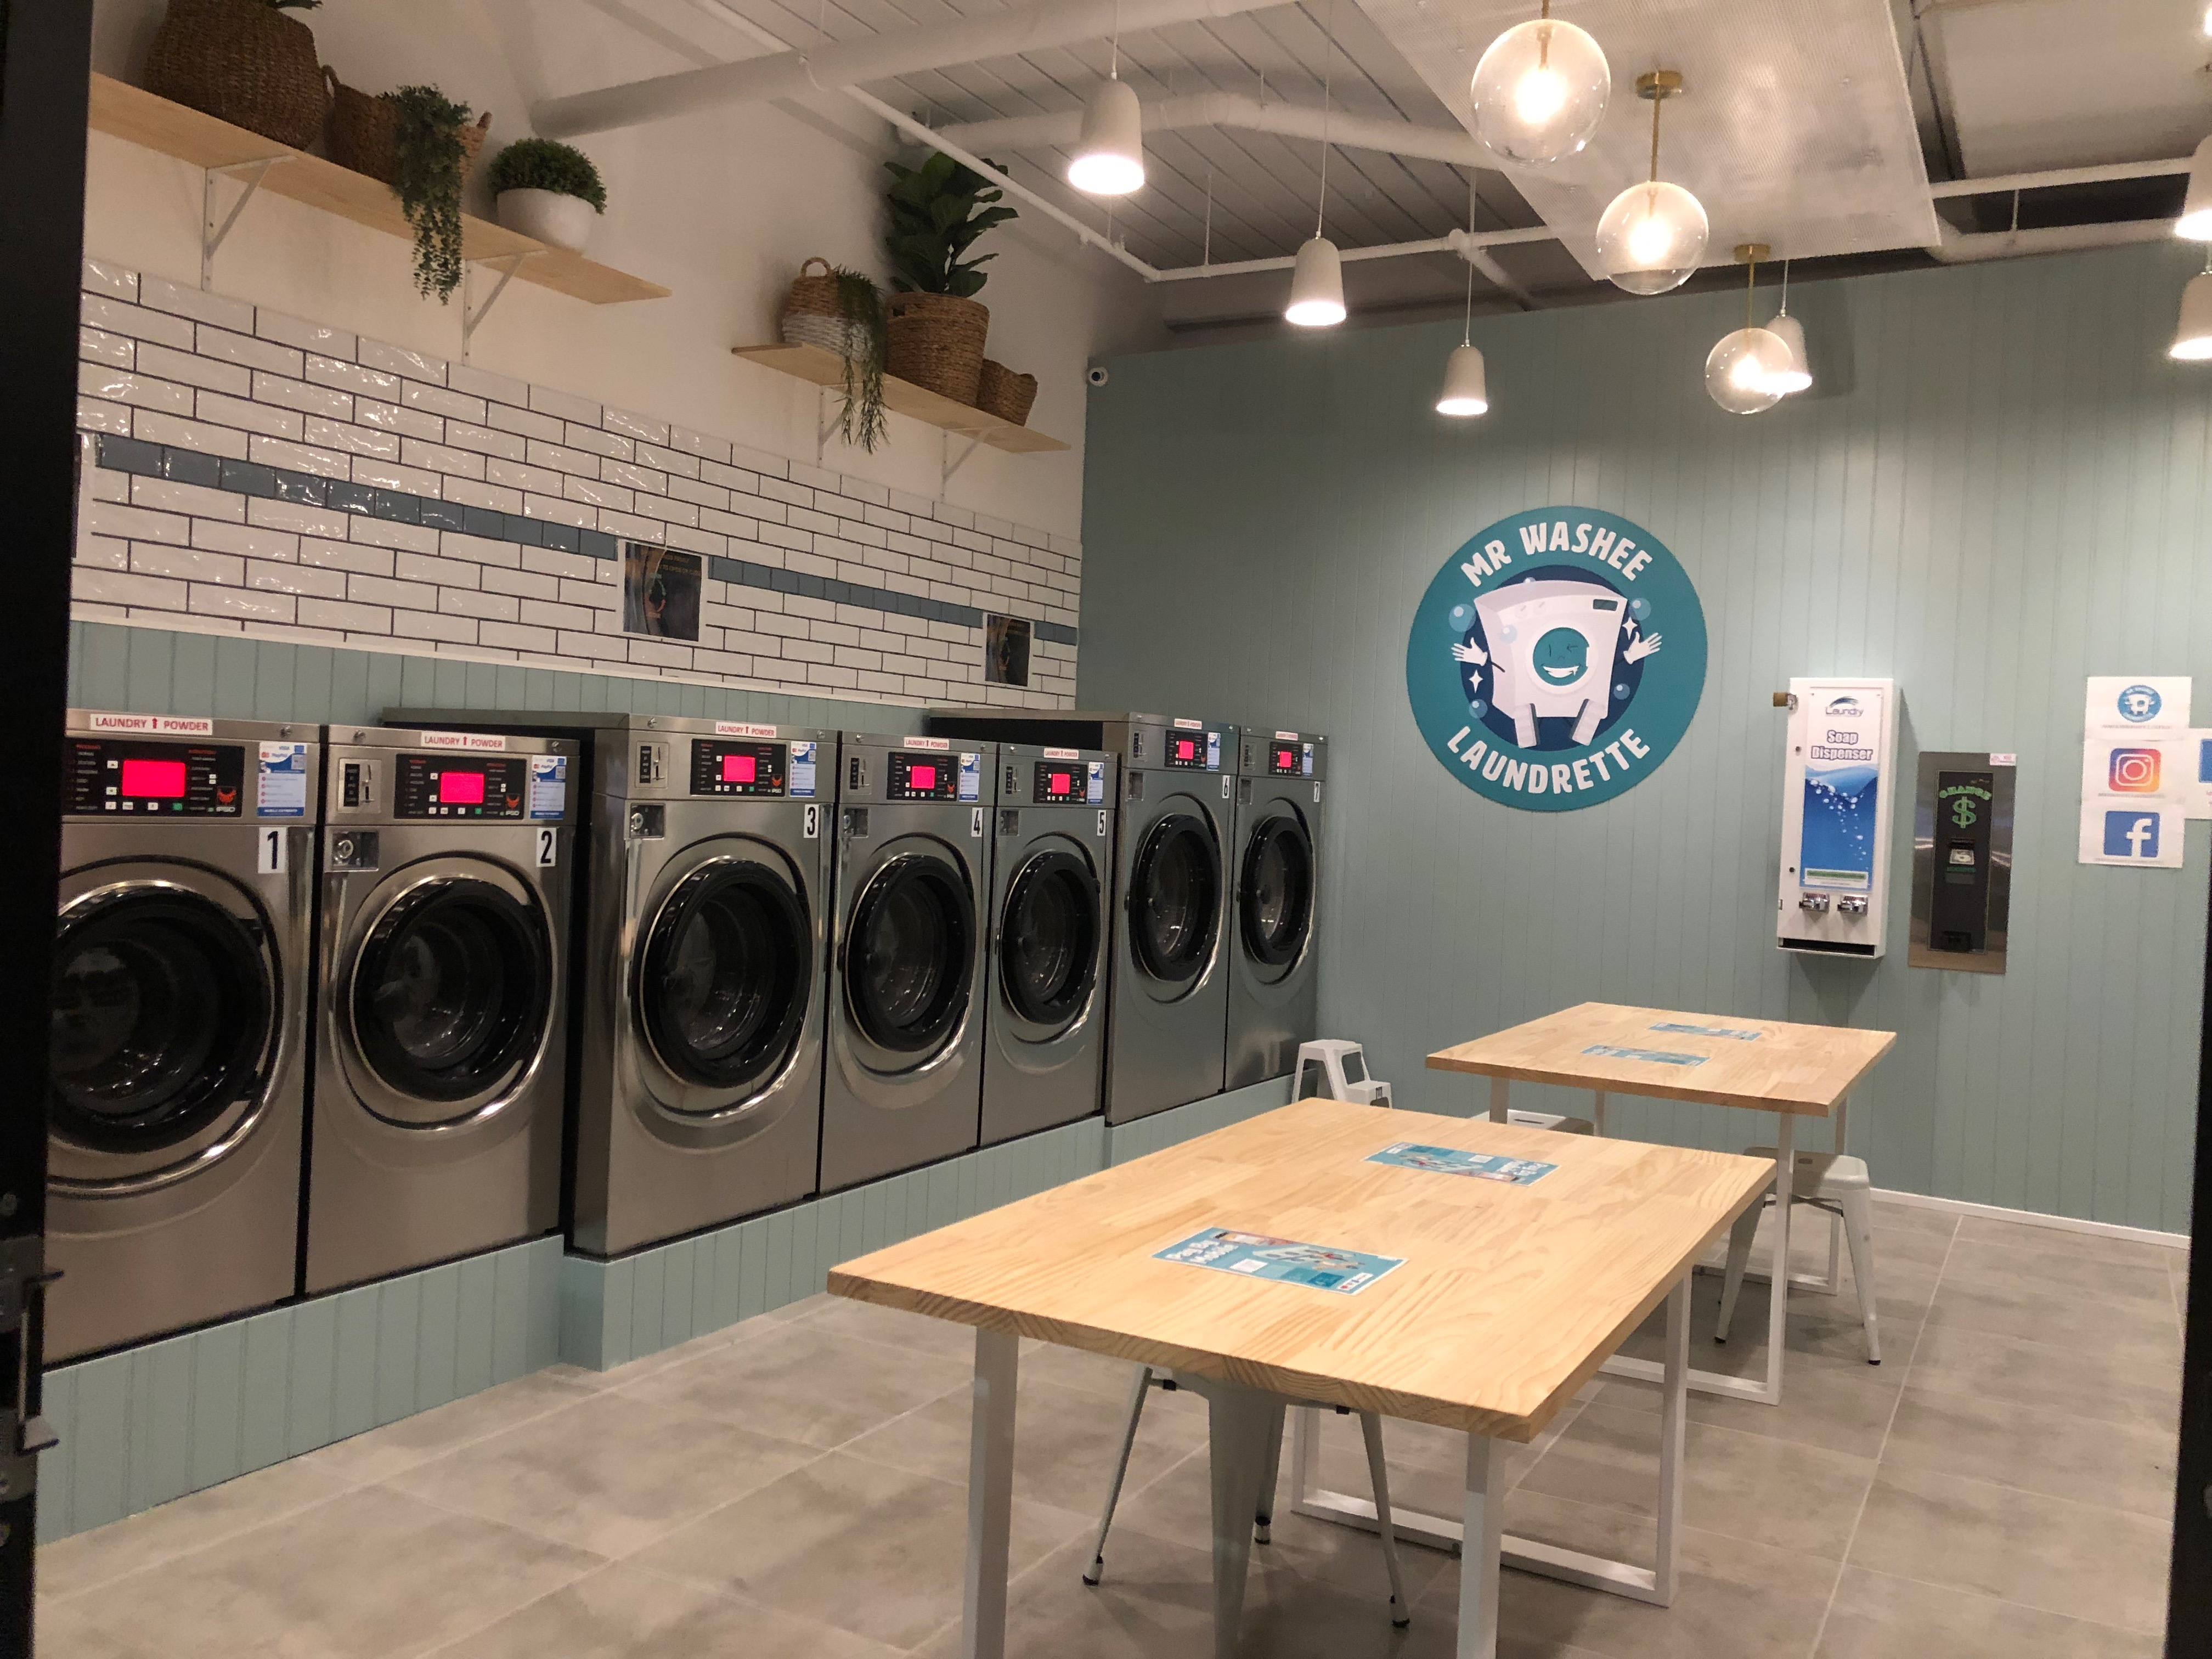 Our Laundromat in Williams Landing has a total of 7 Washer of 3 different sizes